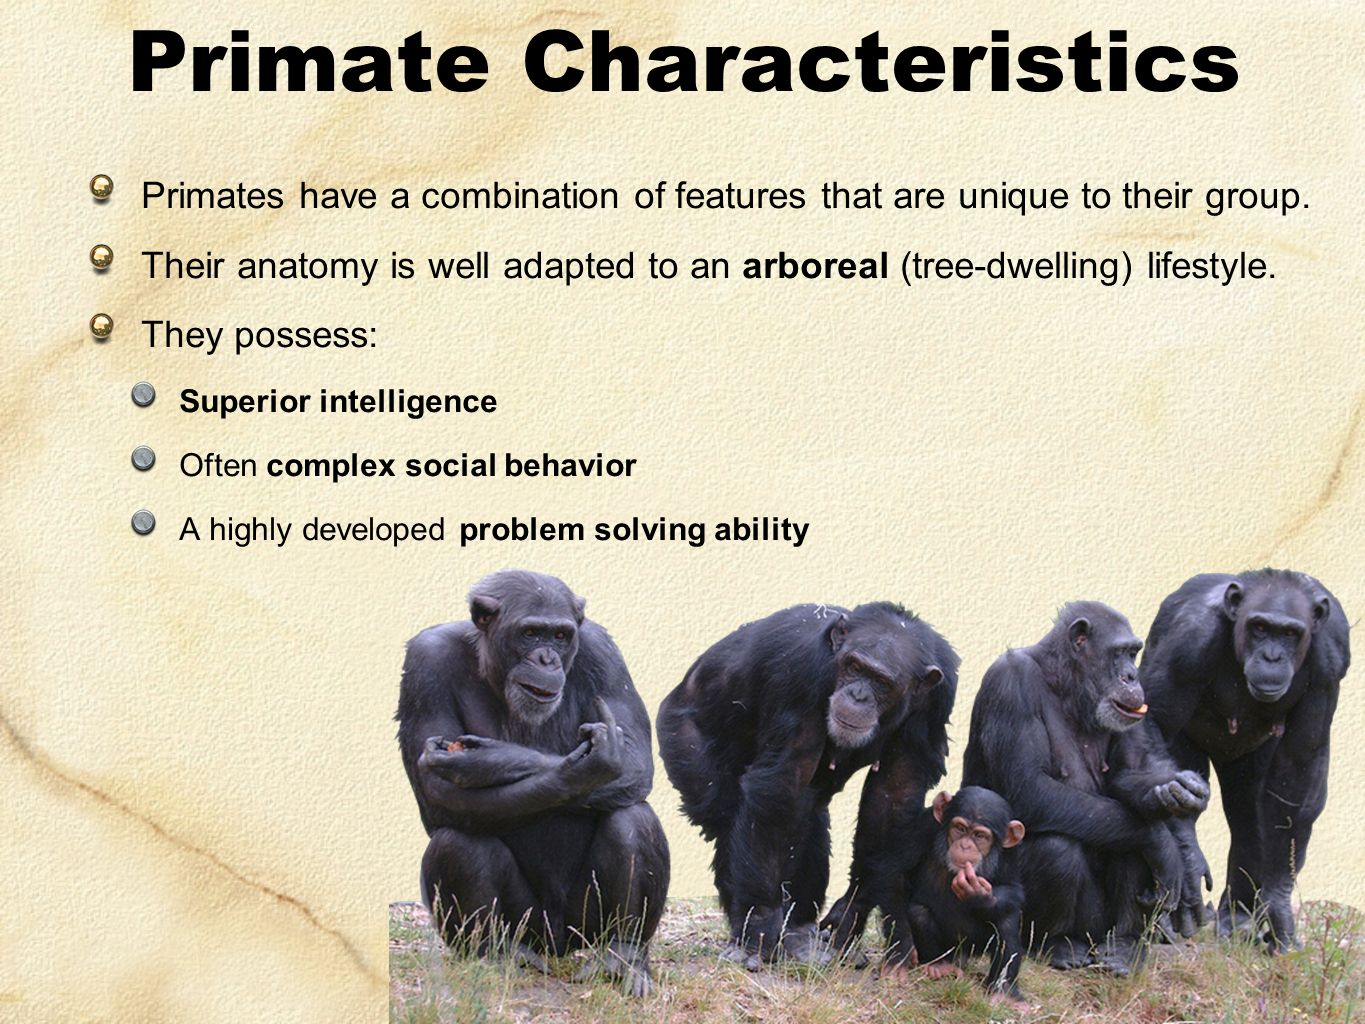 About Apes